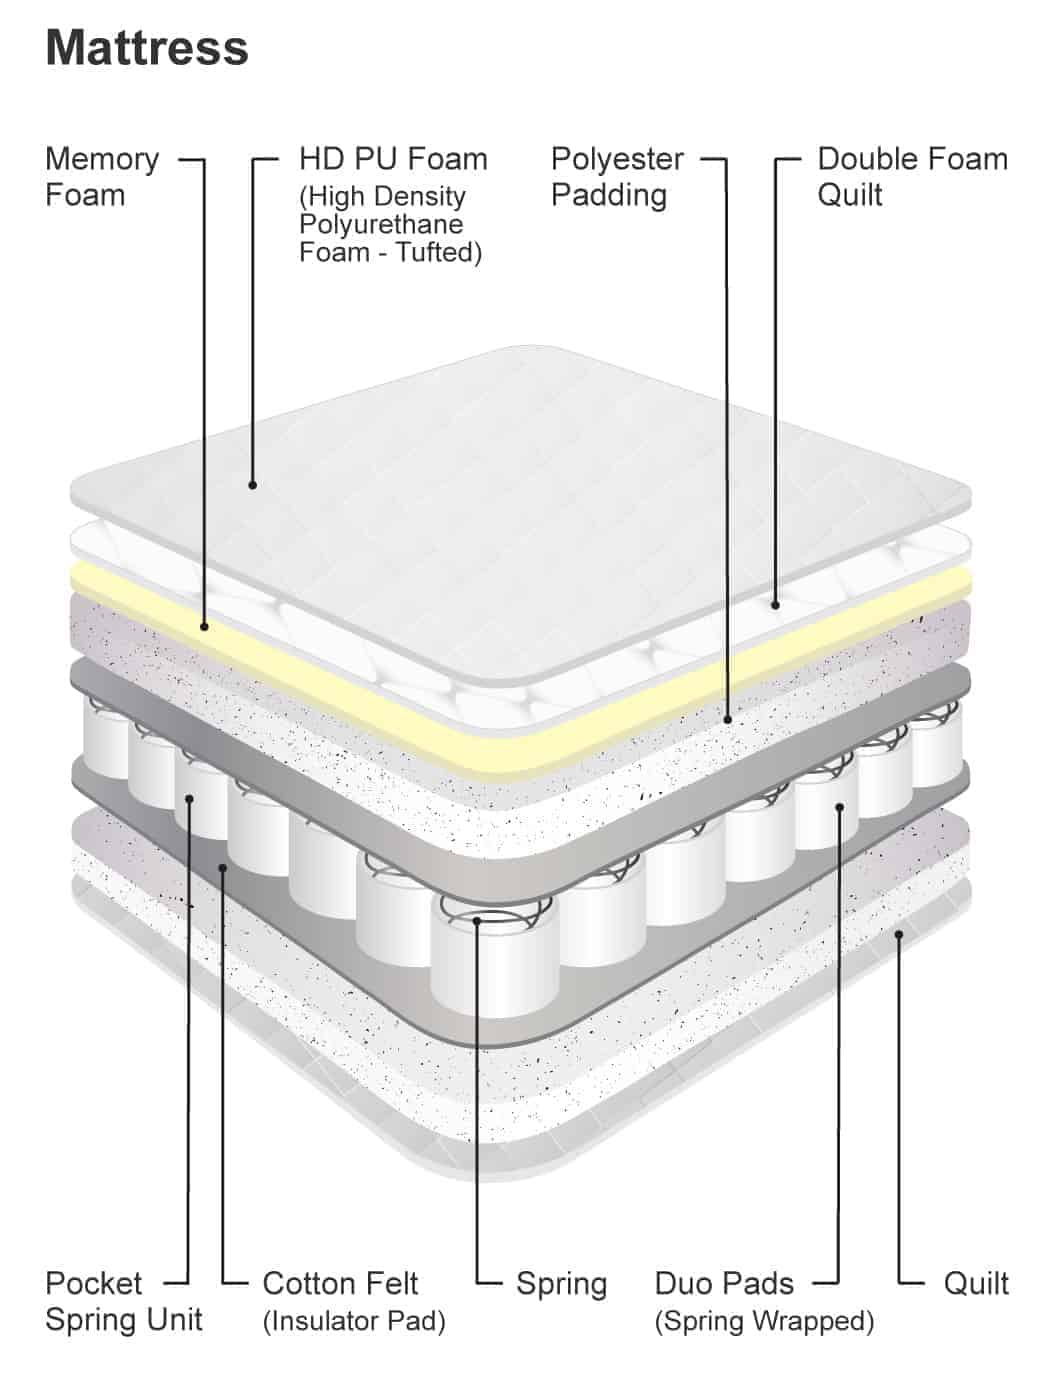 Diagram illustrating the different parts of a mattress.